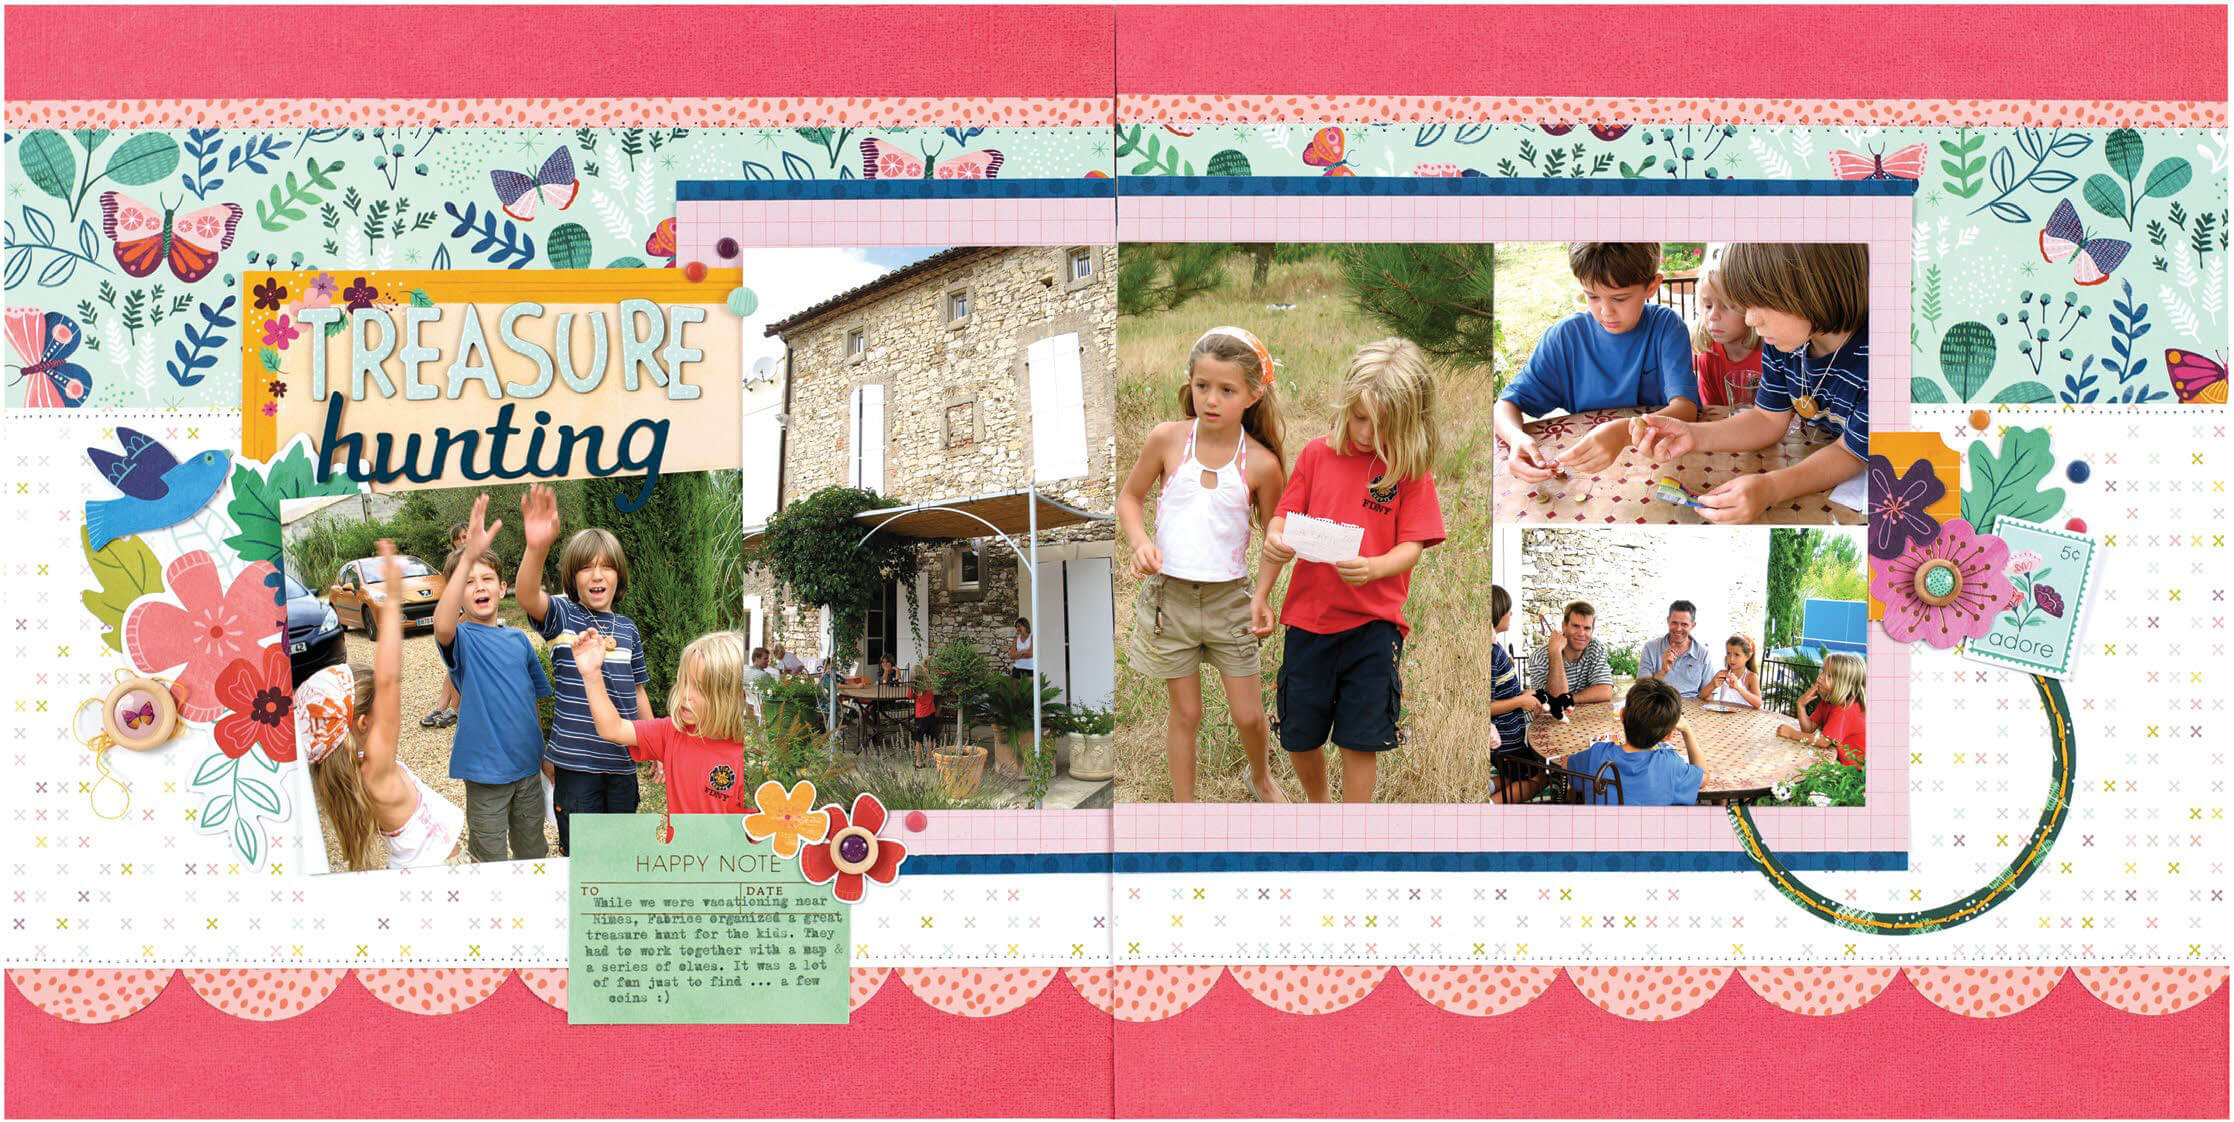 Scrapbook & Cards Today - Spring 2020 - Treasure Hunting layout by Nathalie Leonelli